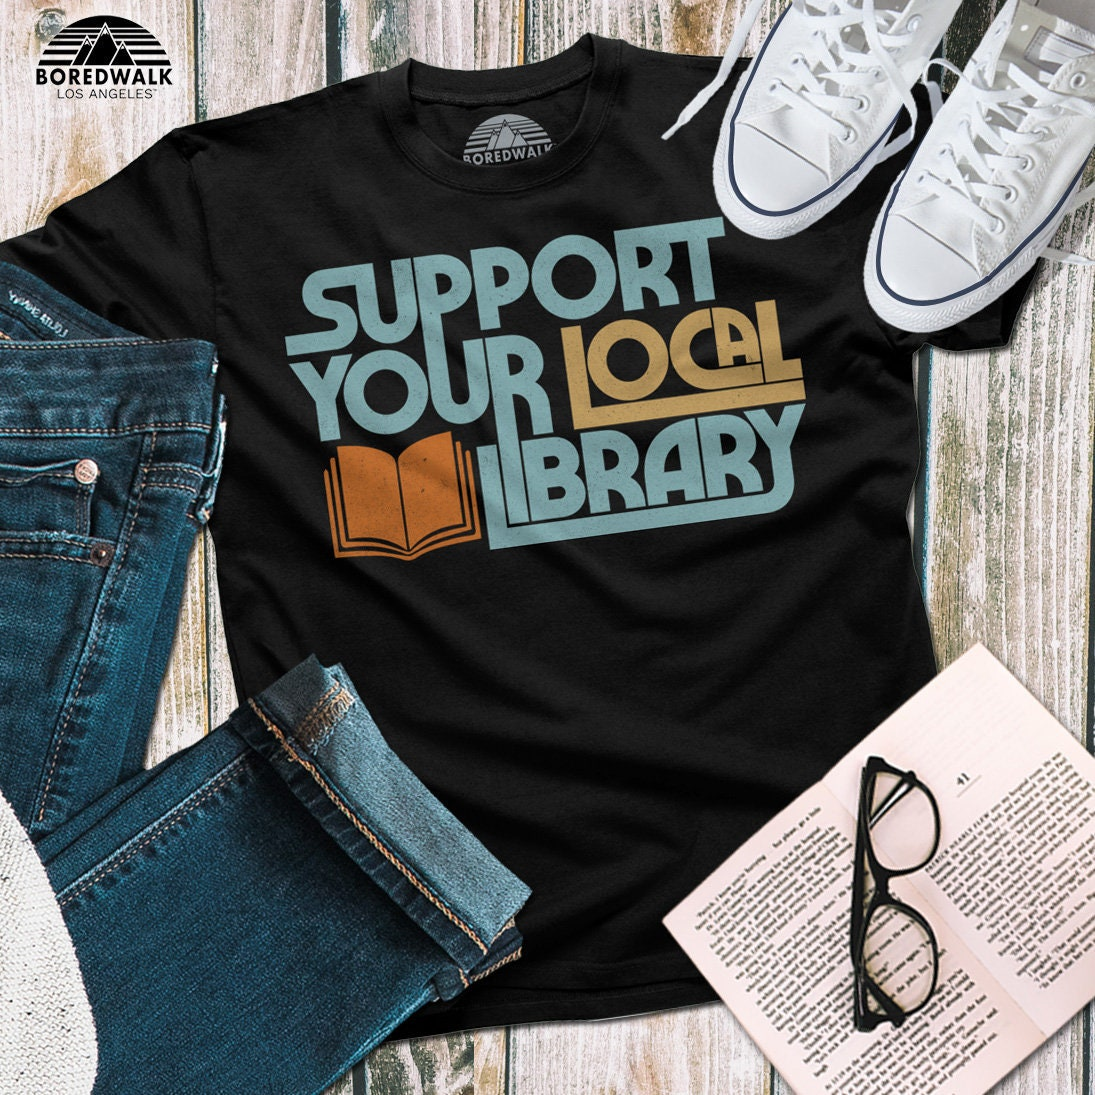 0a732e867 Support Your Local Library Shirt Book Lover Shirt Book | Etsy